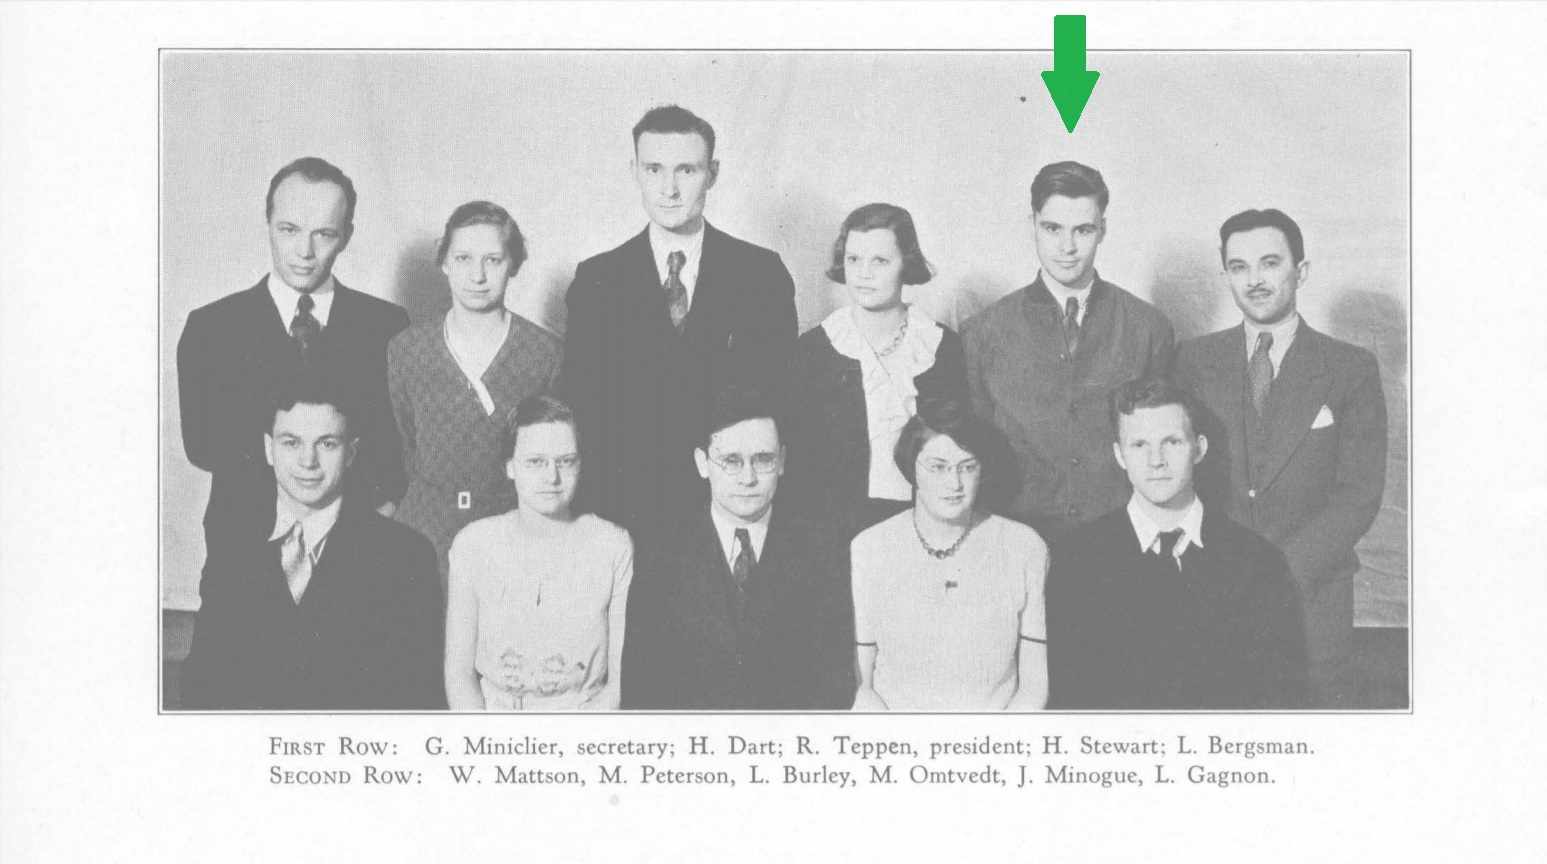 James Minogue as Member of Student Council, Duluth State Teachers College, Minnesota, 1931-1932